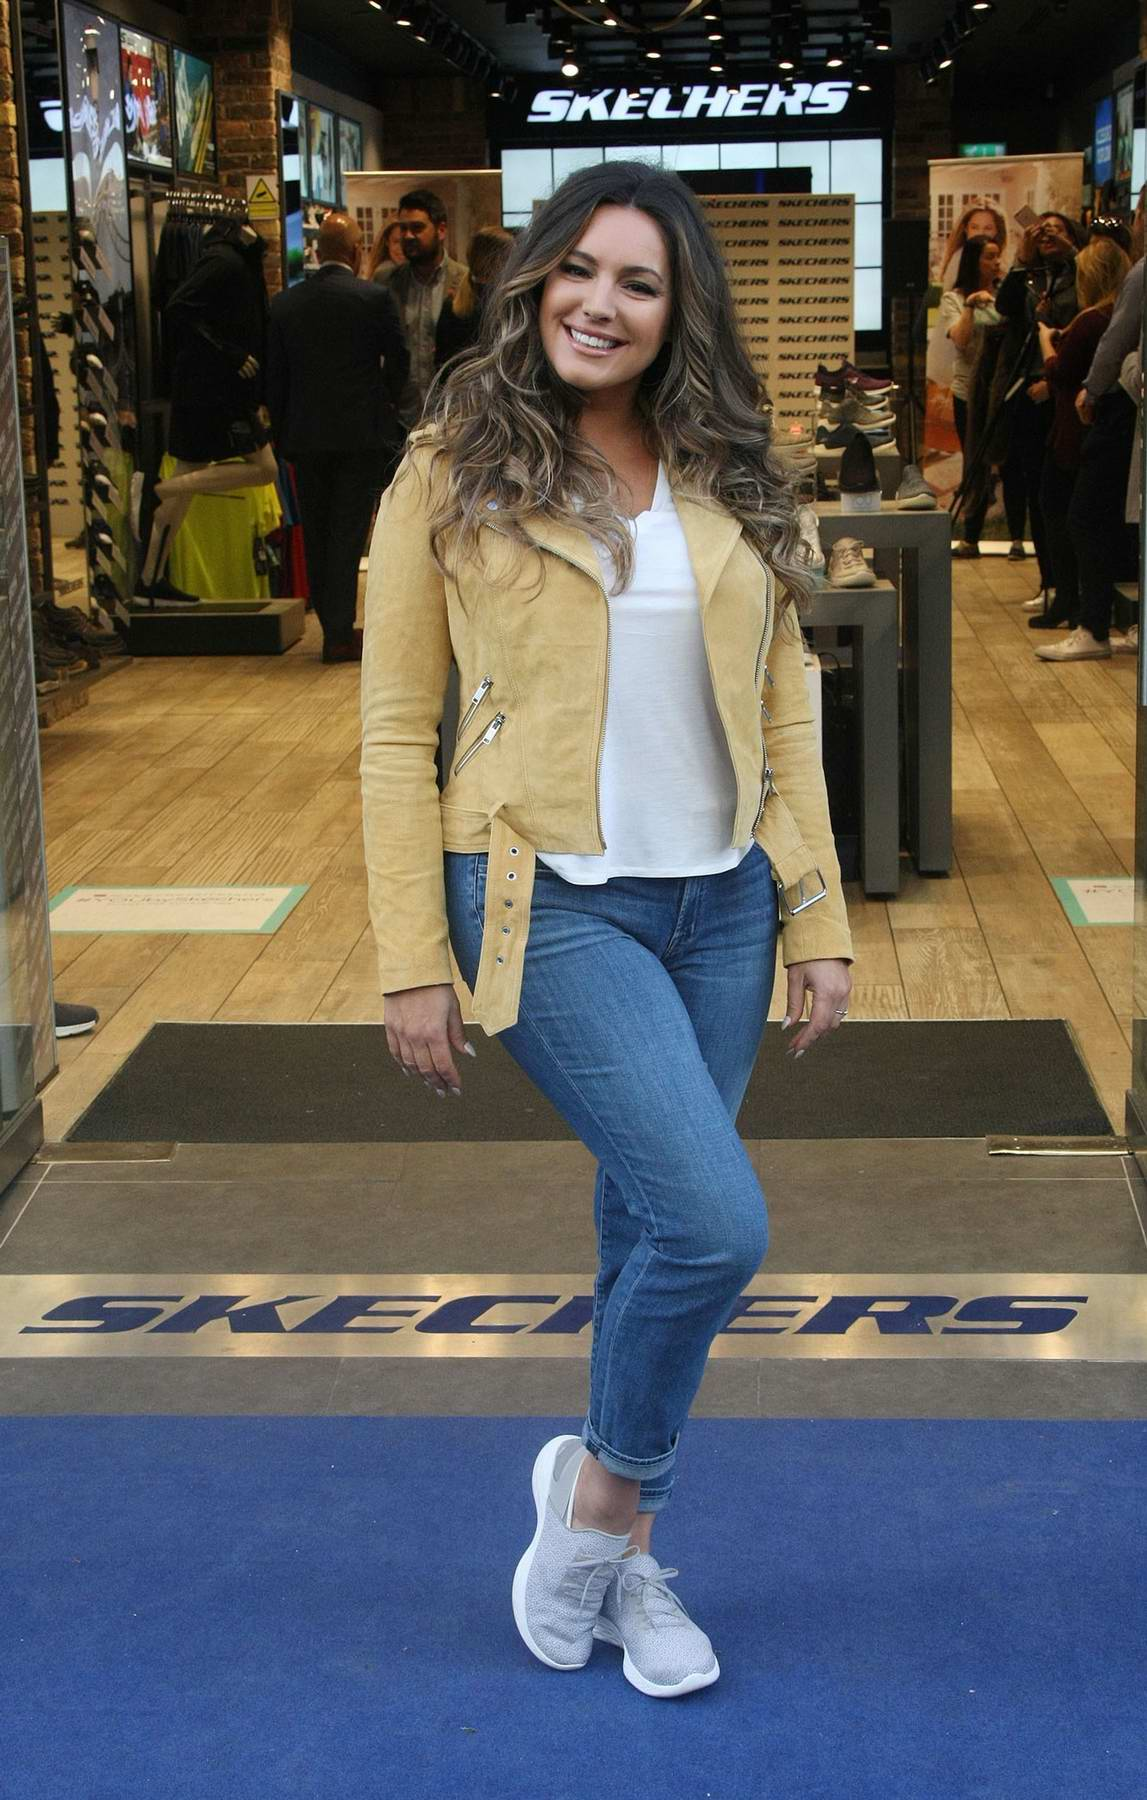 Kelly Brook attends the a photocall for Skechers in dublin, Ireland